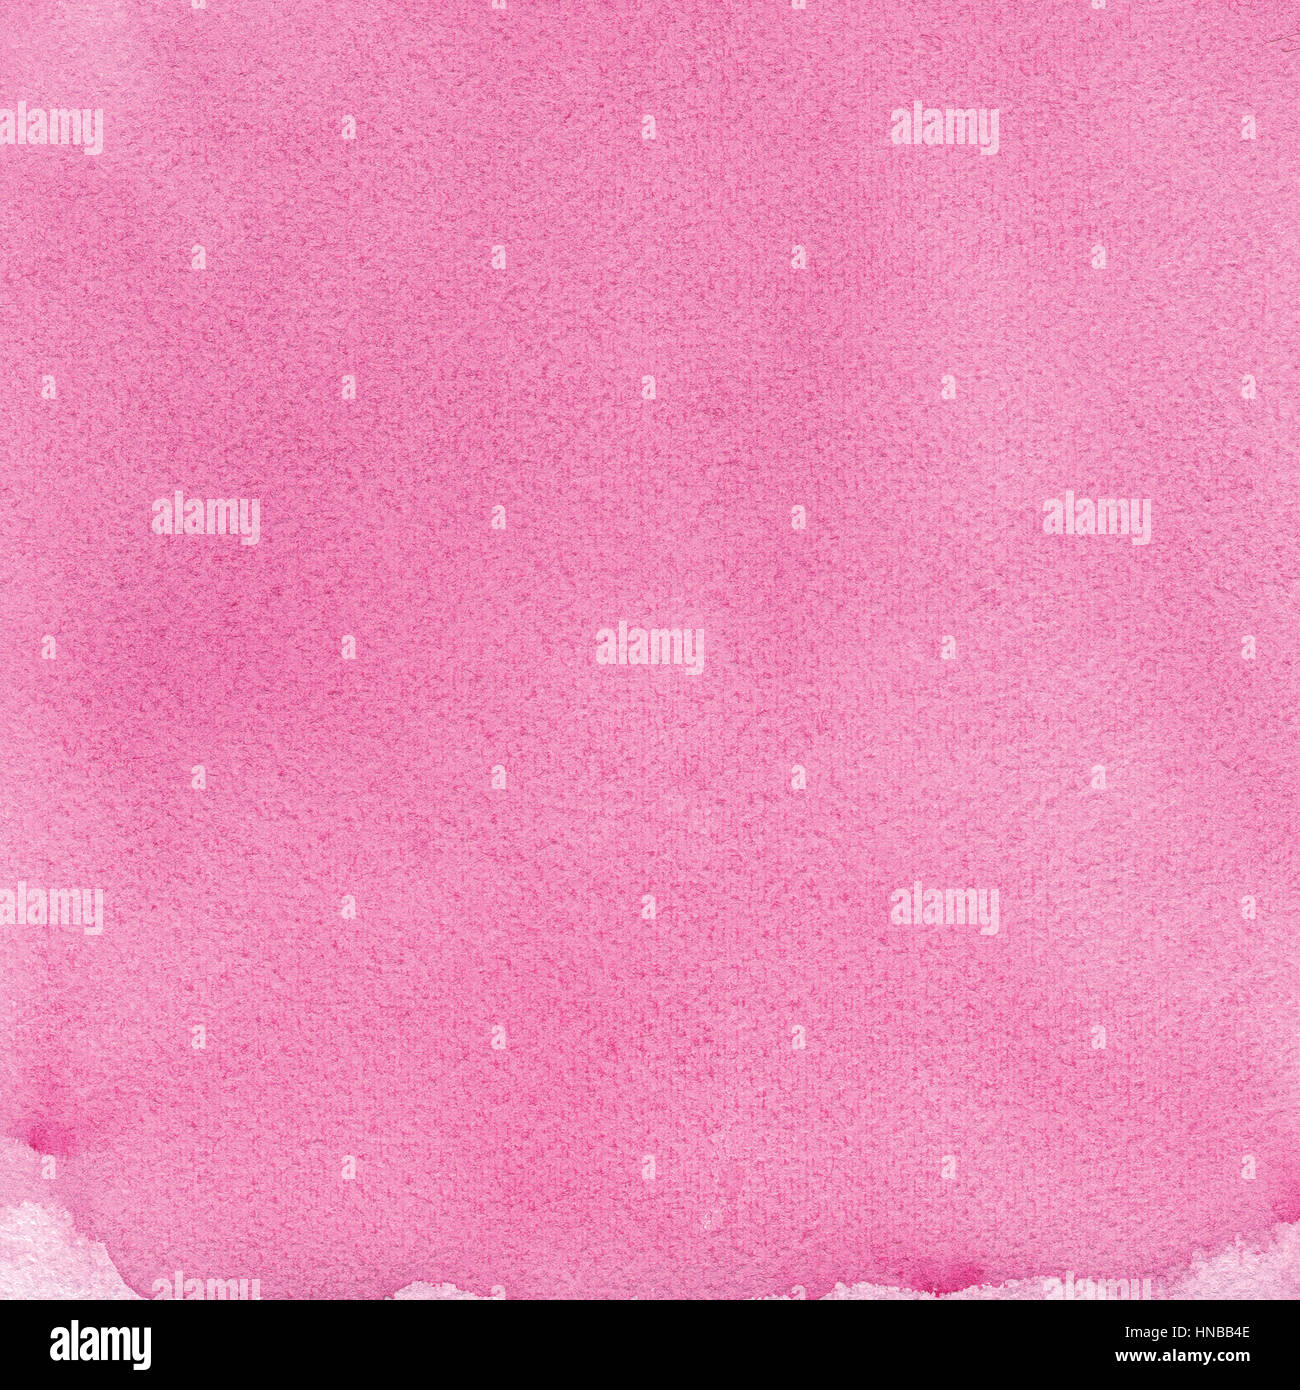 Pink natural handmade aquarelle painting texture, vertical textured watercolor paper macro close up copy space background - Stock Image